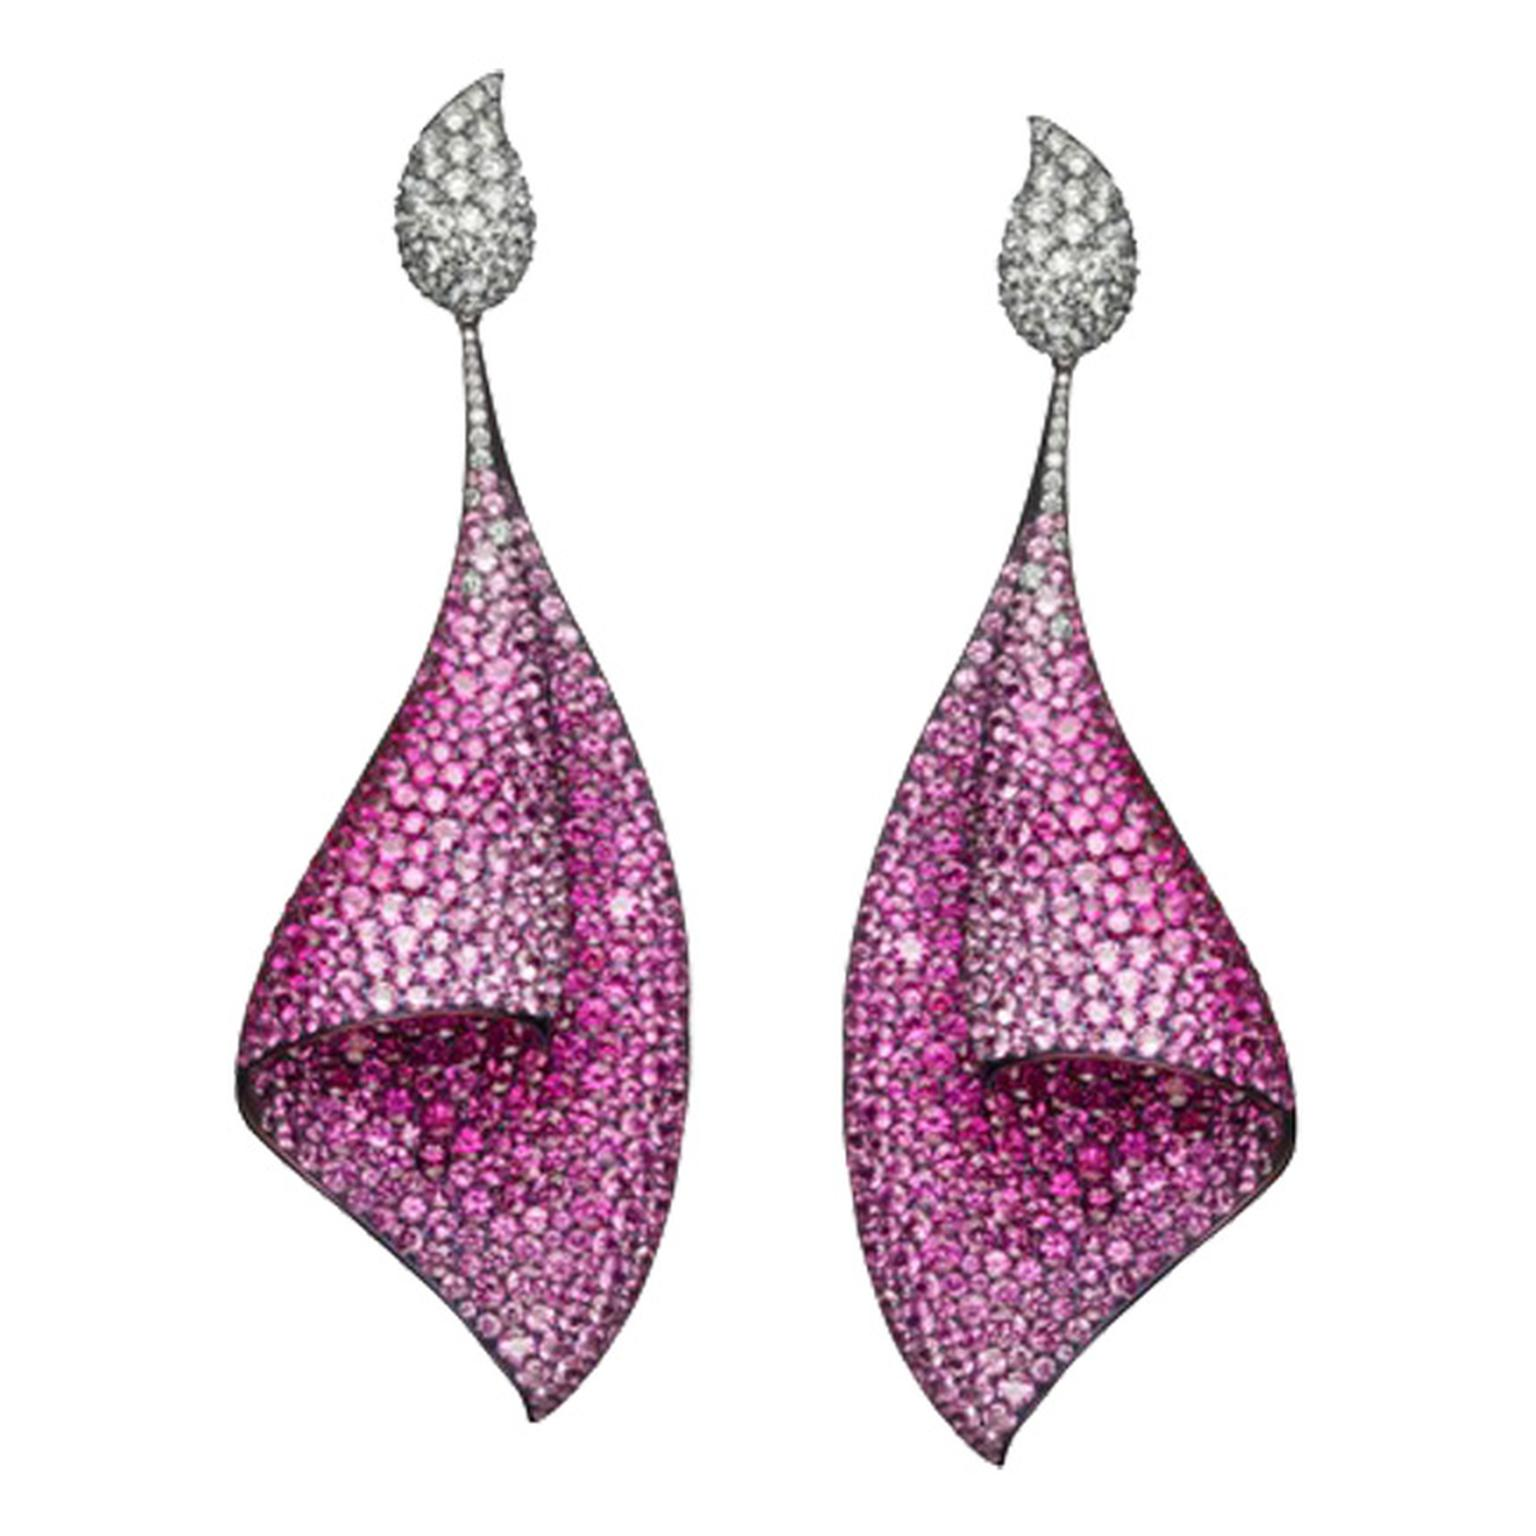 Adler -titanium -and -pink -sapphire -Sail -earrings -ZOOM